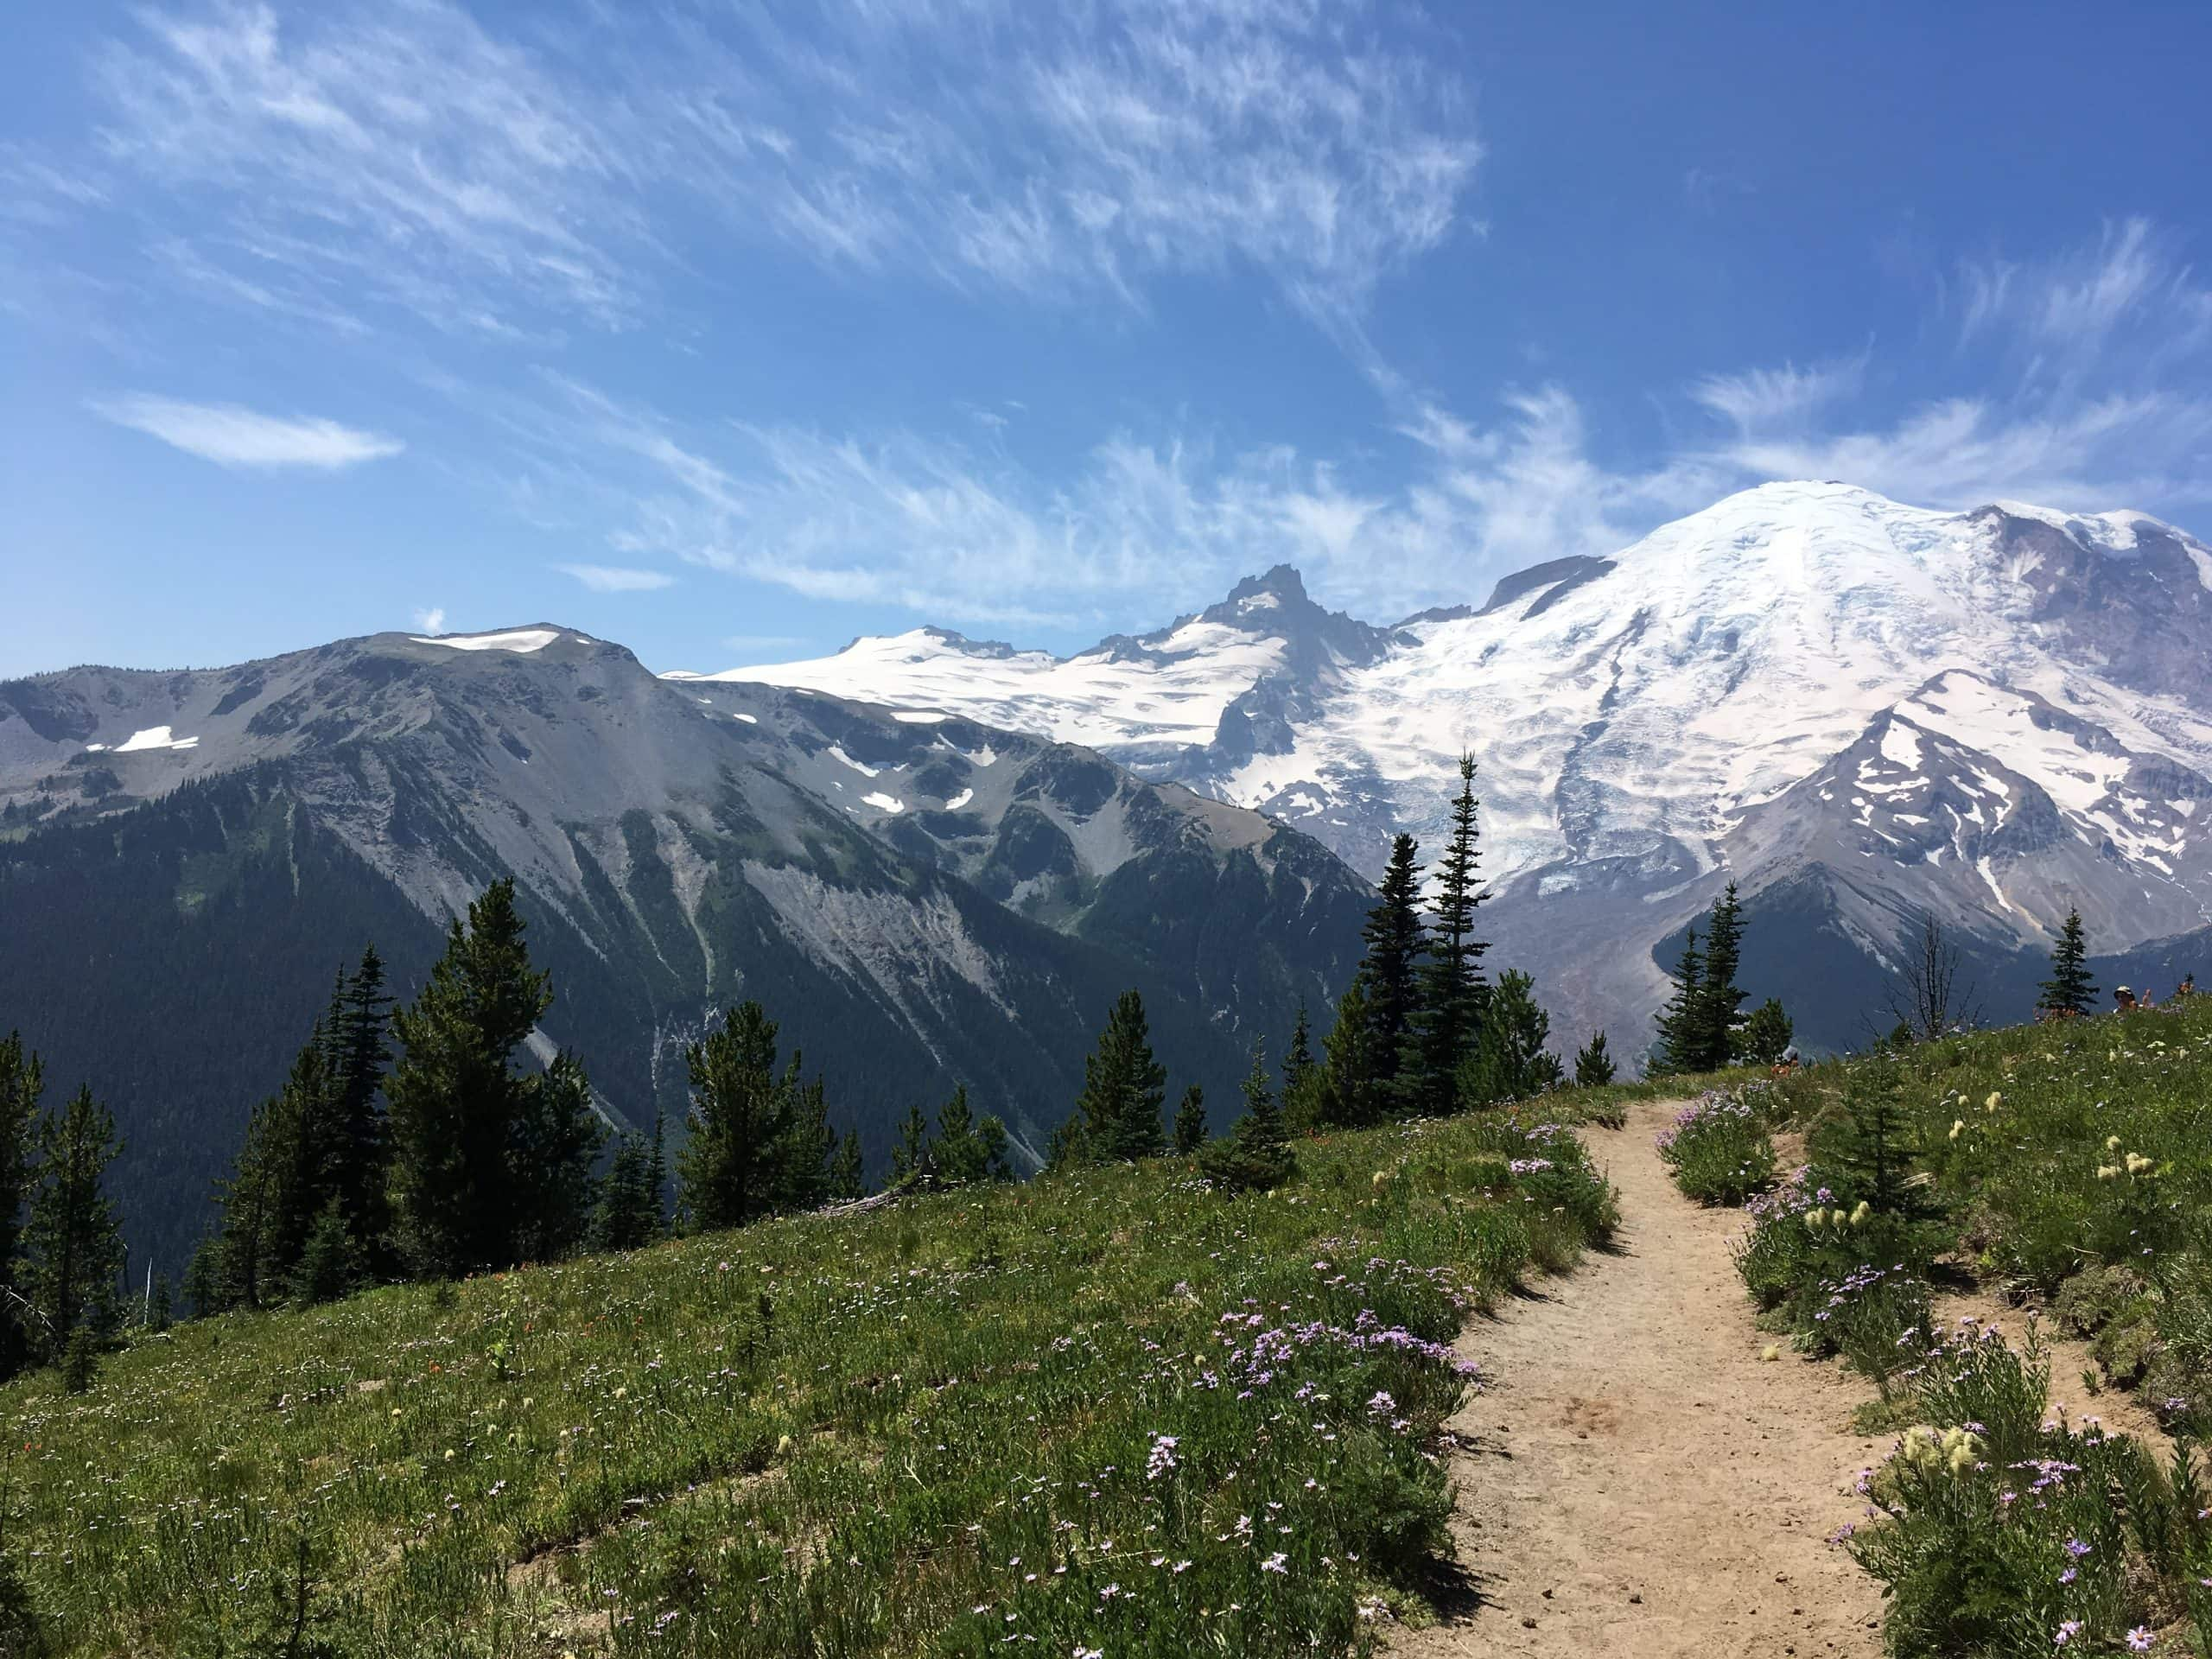 One of Bruce's favorite trails on Mt. Ranier